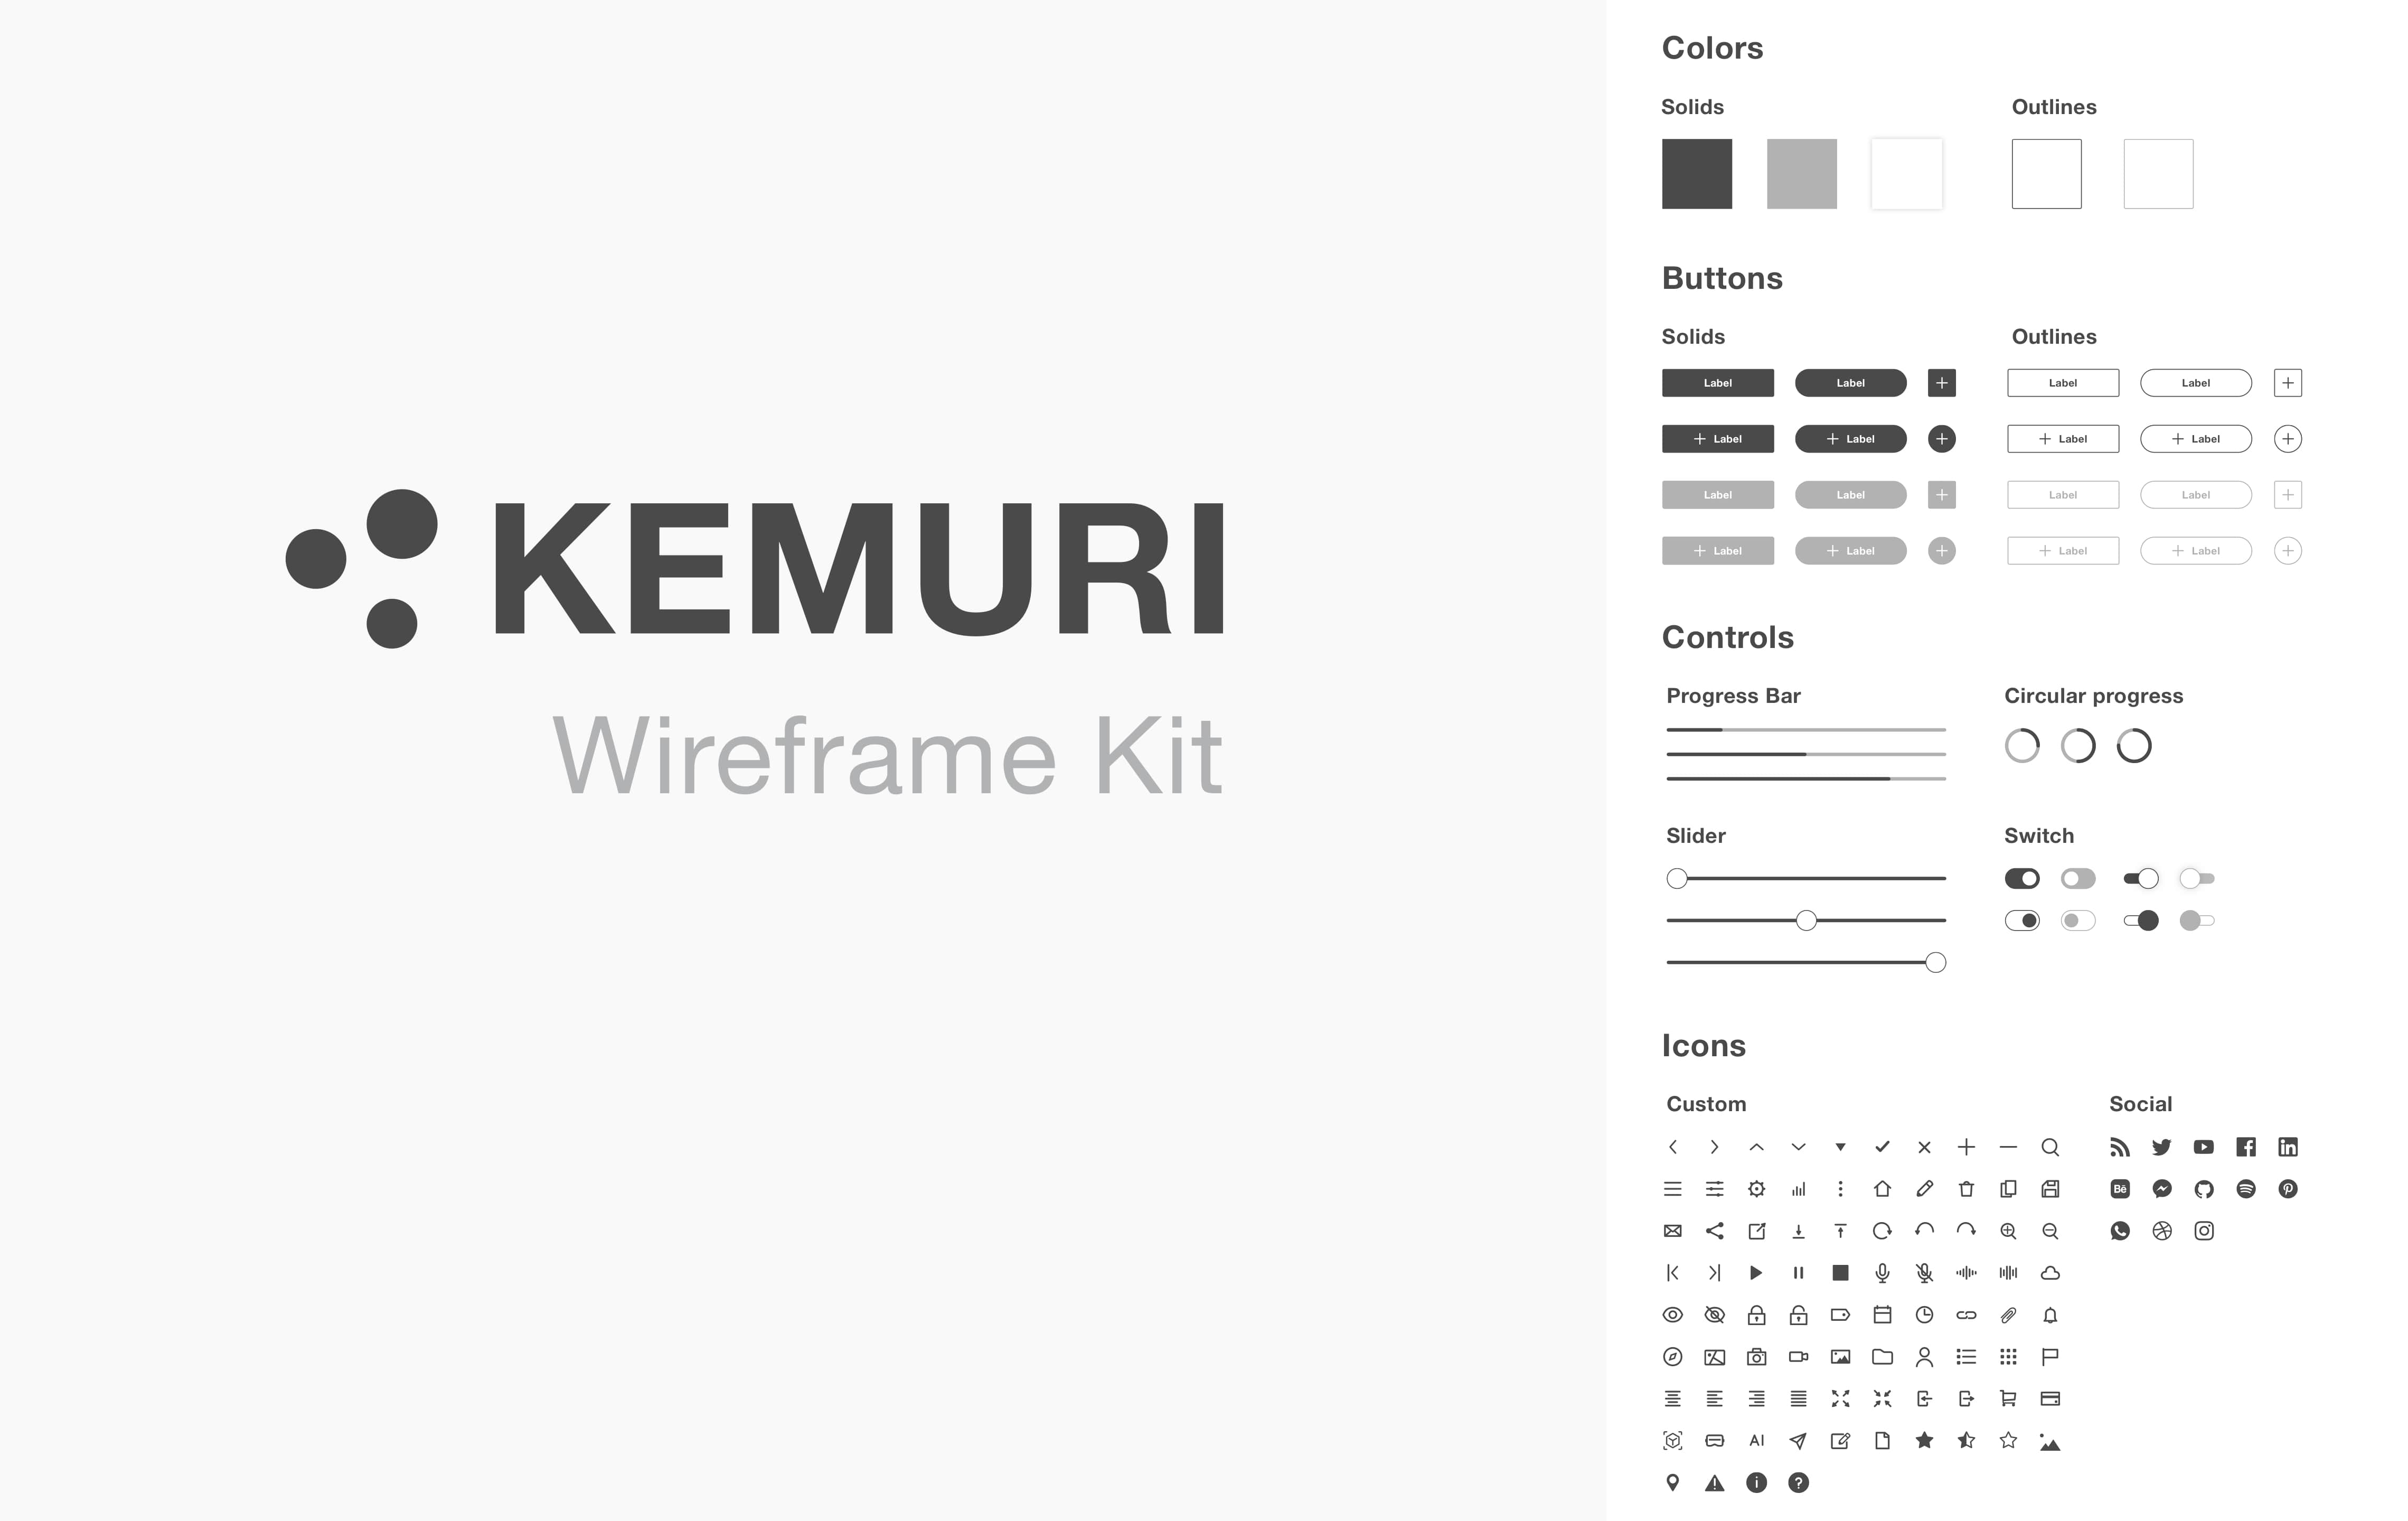 Kemuri wireframe kit cover showcasing some of the components